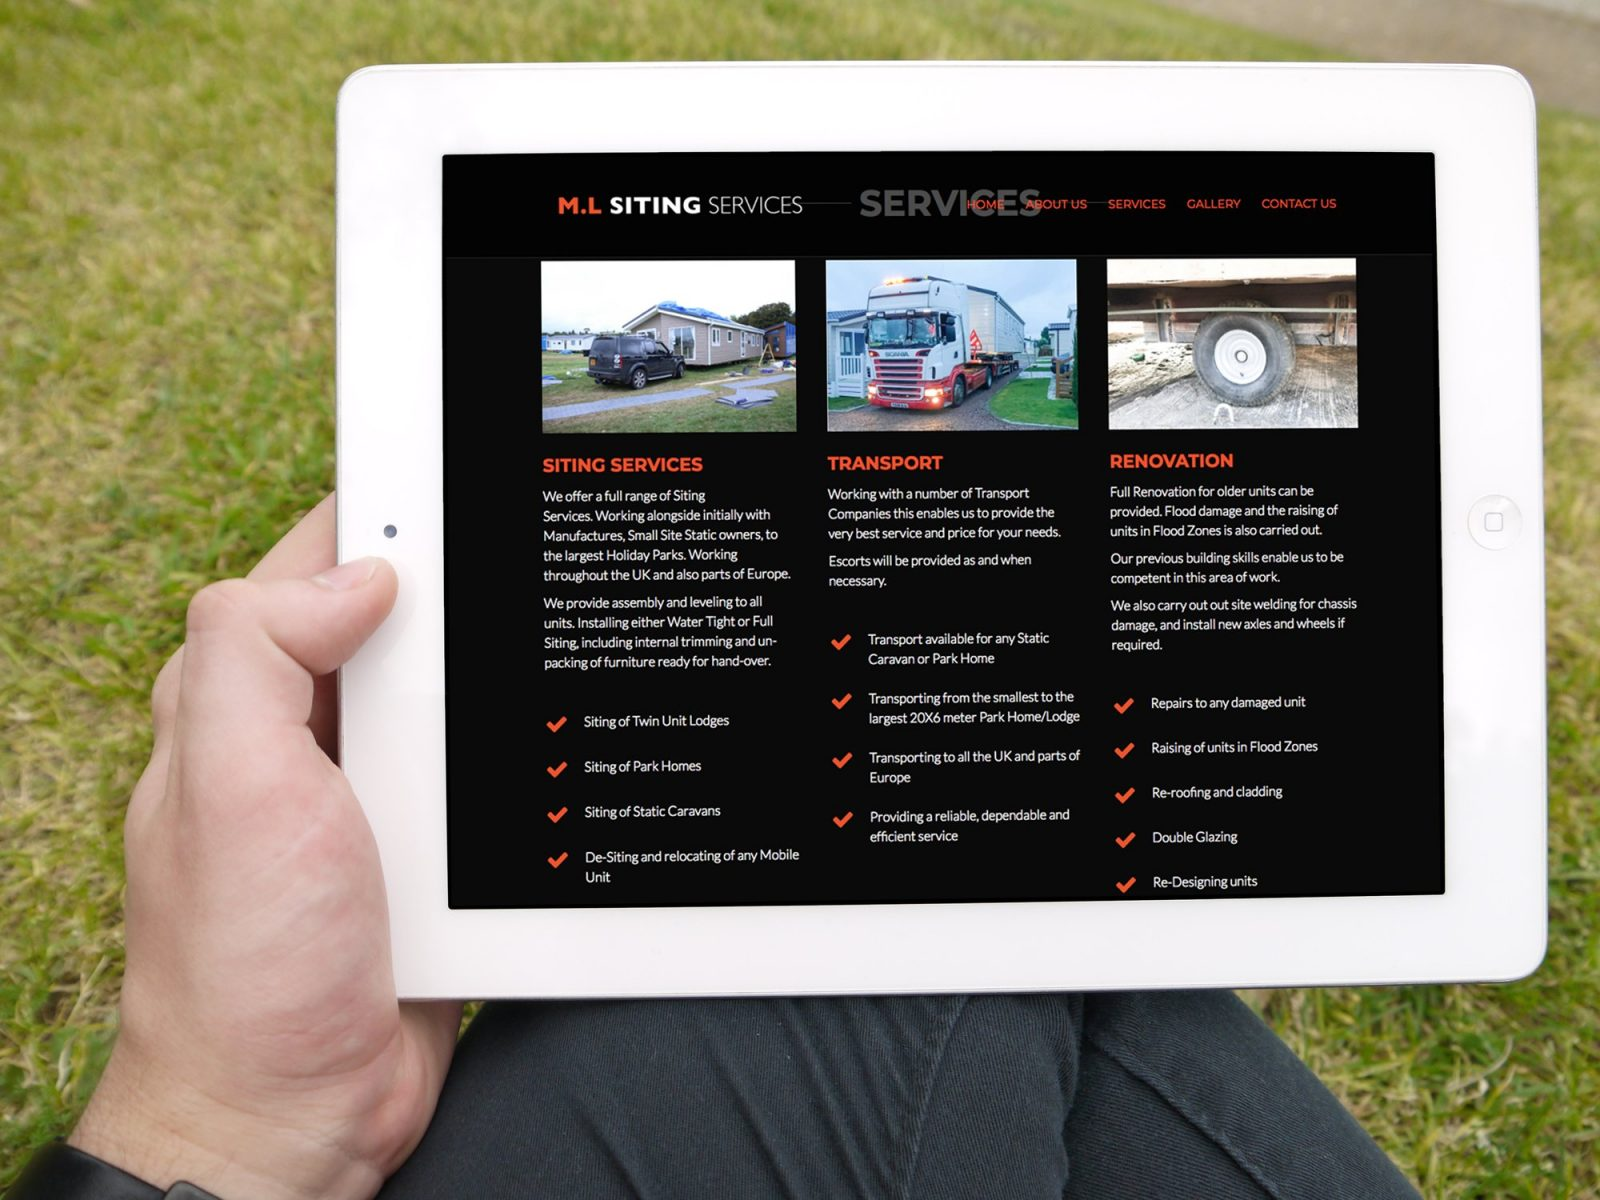 A tablet showing the home page of the website design for M.L Siting Services